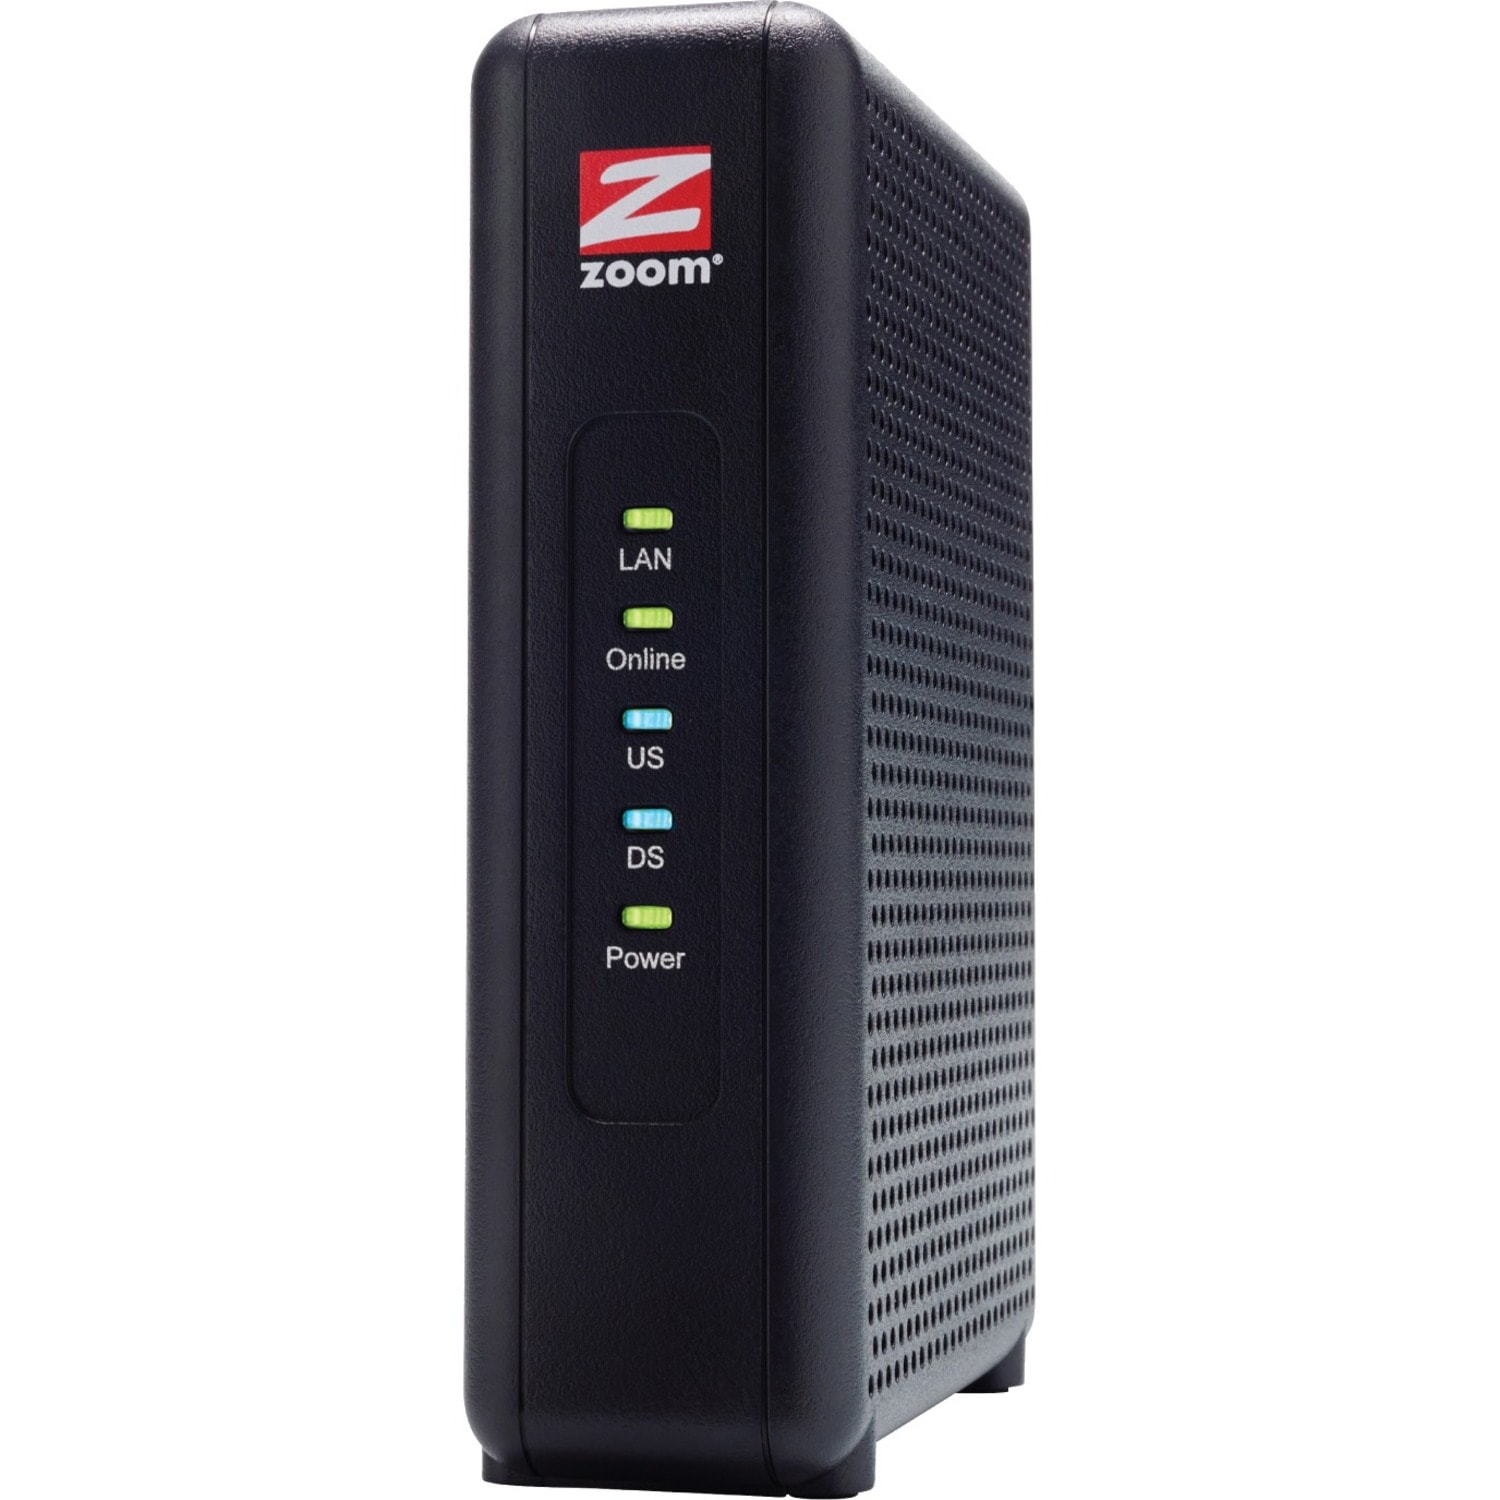 Zoom DOCSIS 3.0 Cable Modem, 8x4, 343 Mbps, Model 5345